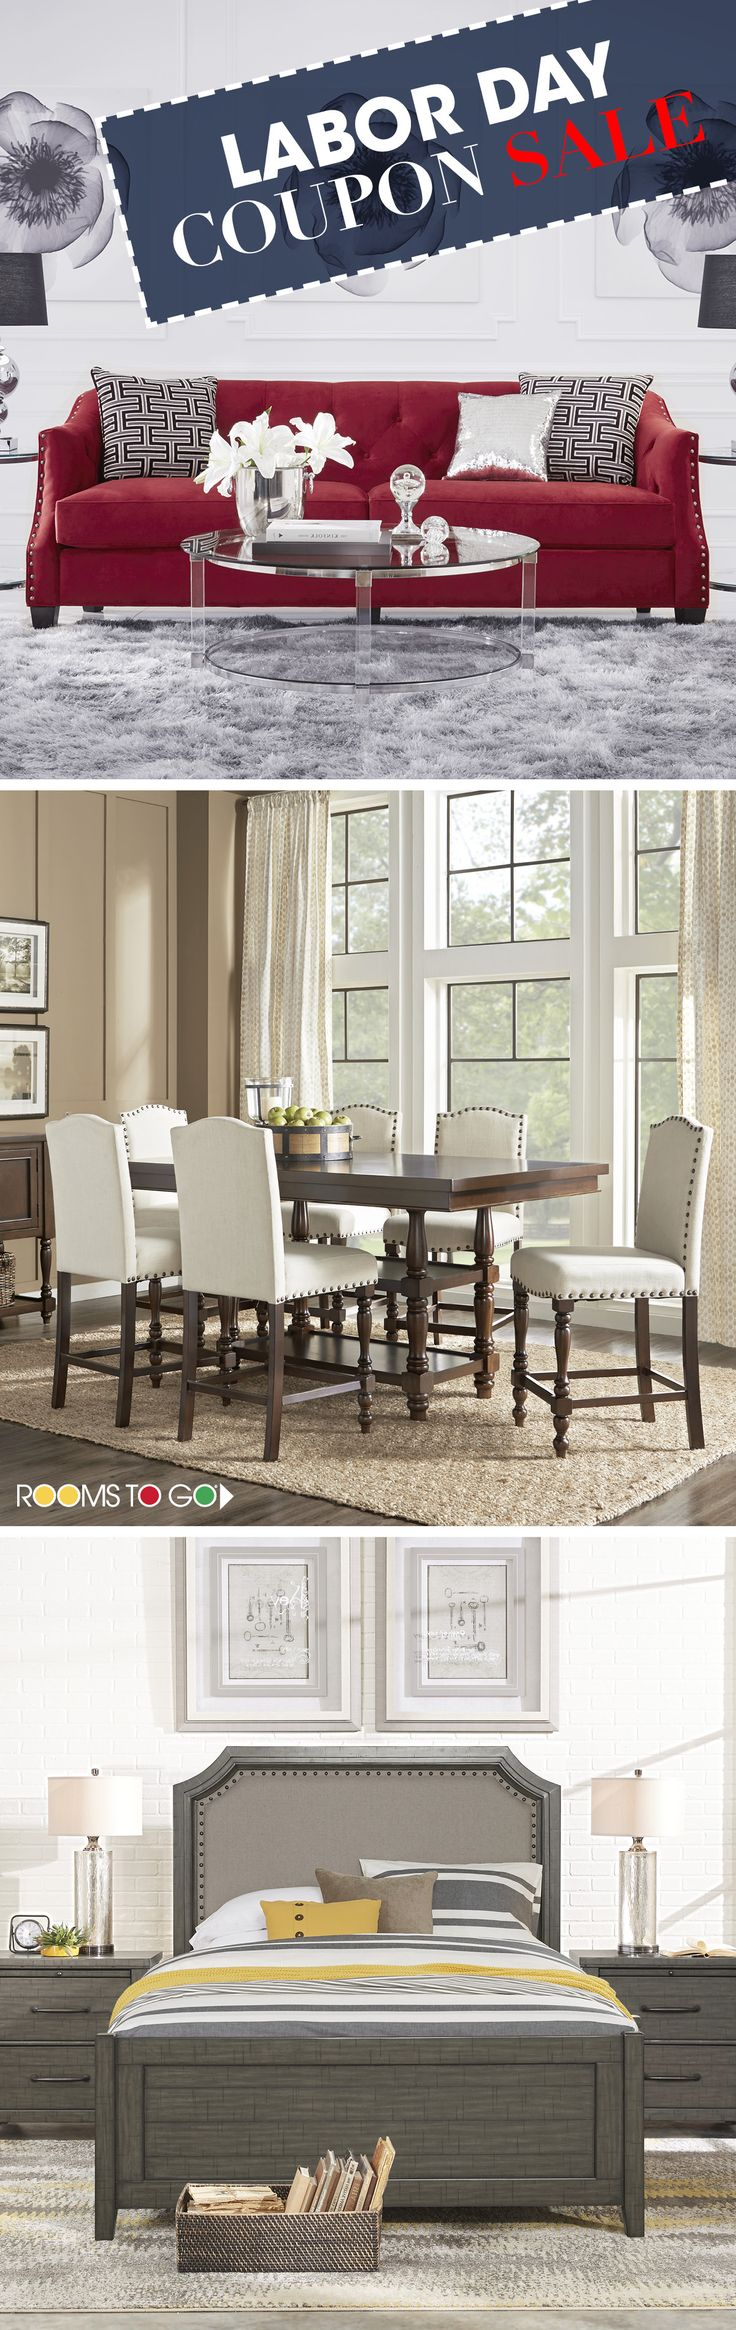 Furniture Store Affordable Home For Less Online